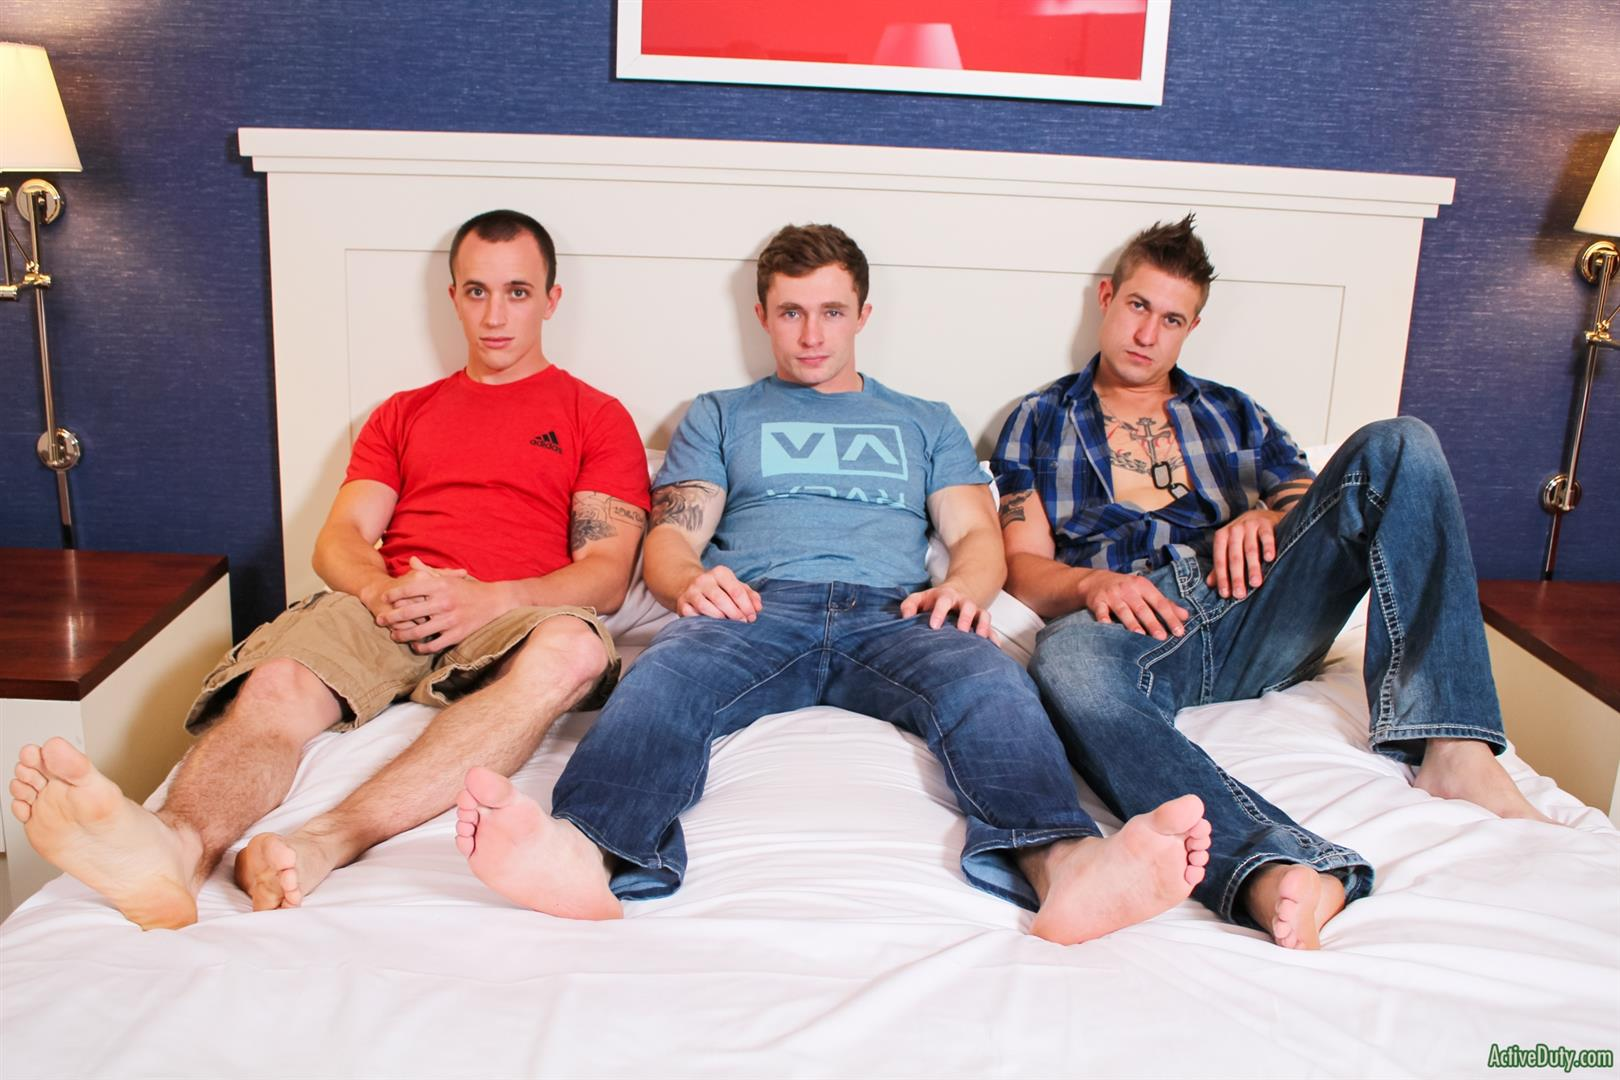 Active Duty Threeway Army Guys Bareback Sex Video Amateur Gay Porn 05 Big Dick Muscular Army Guys In A Bareback Threeway